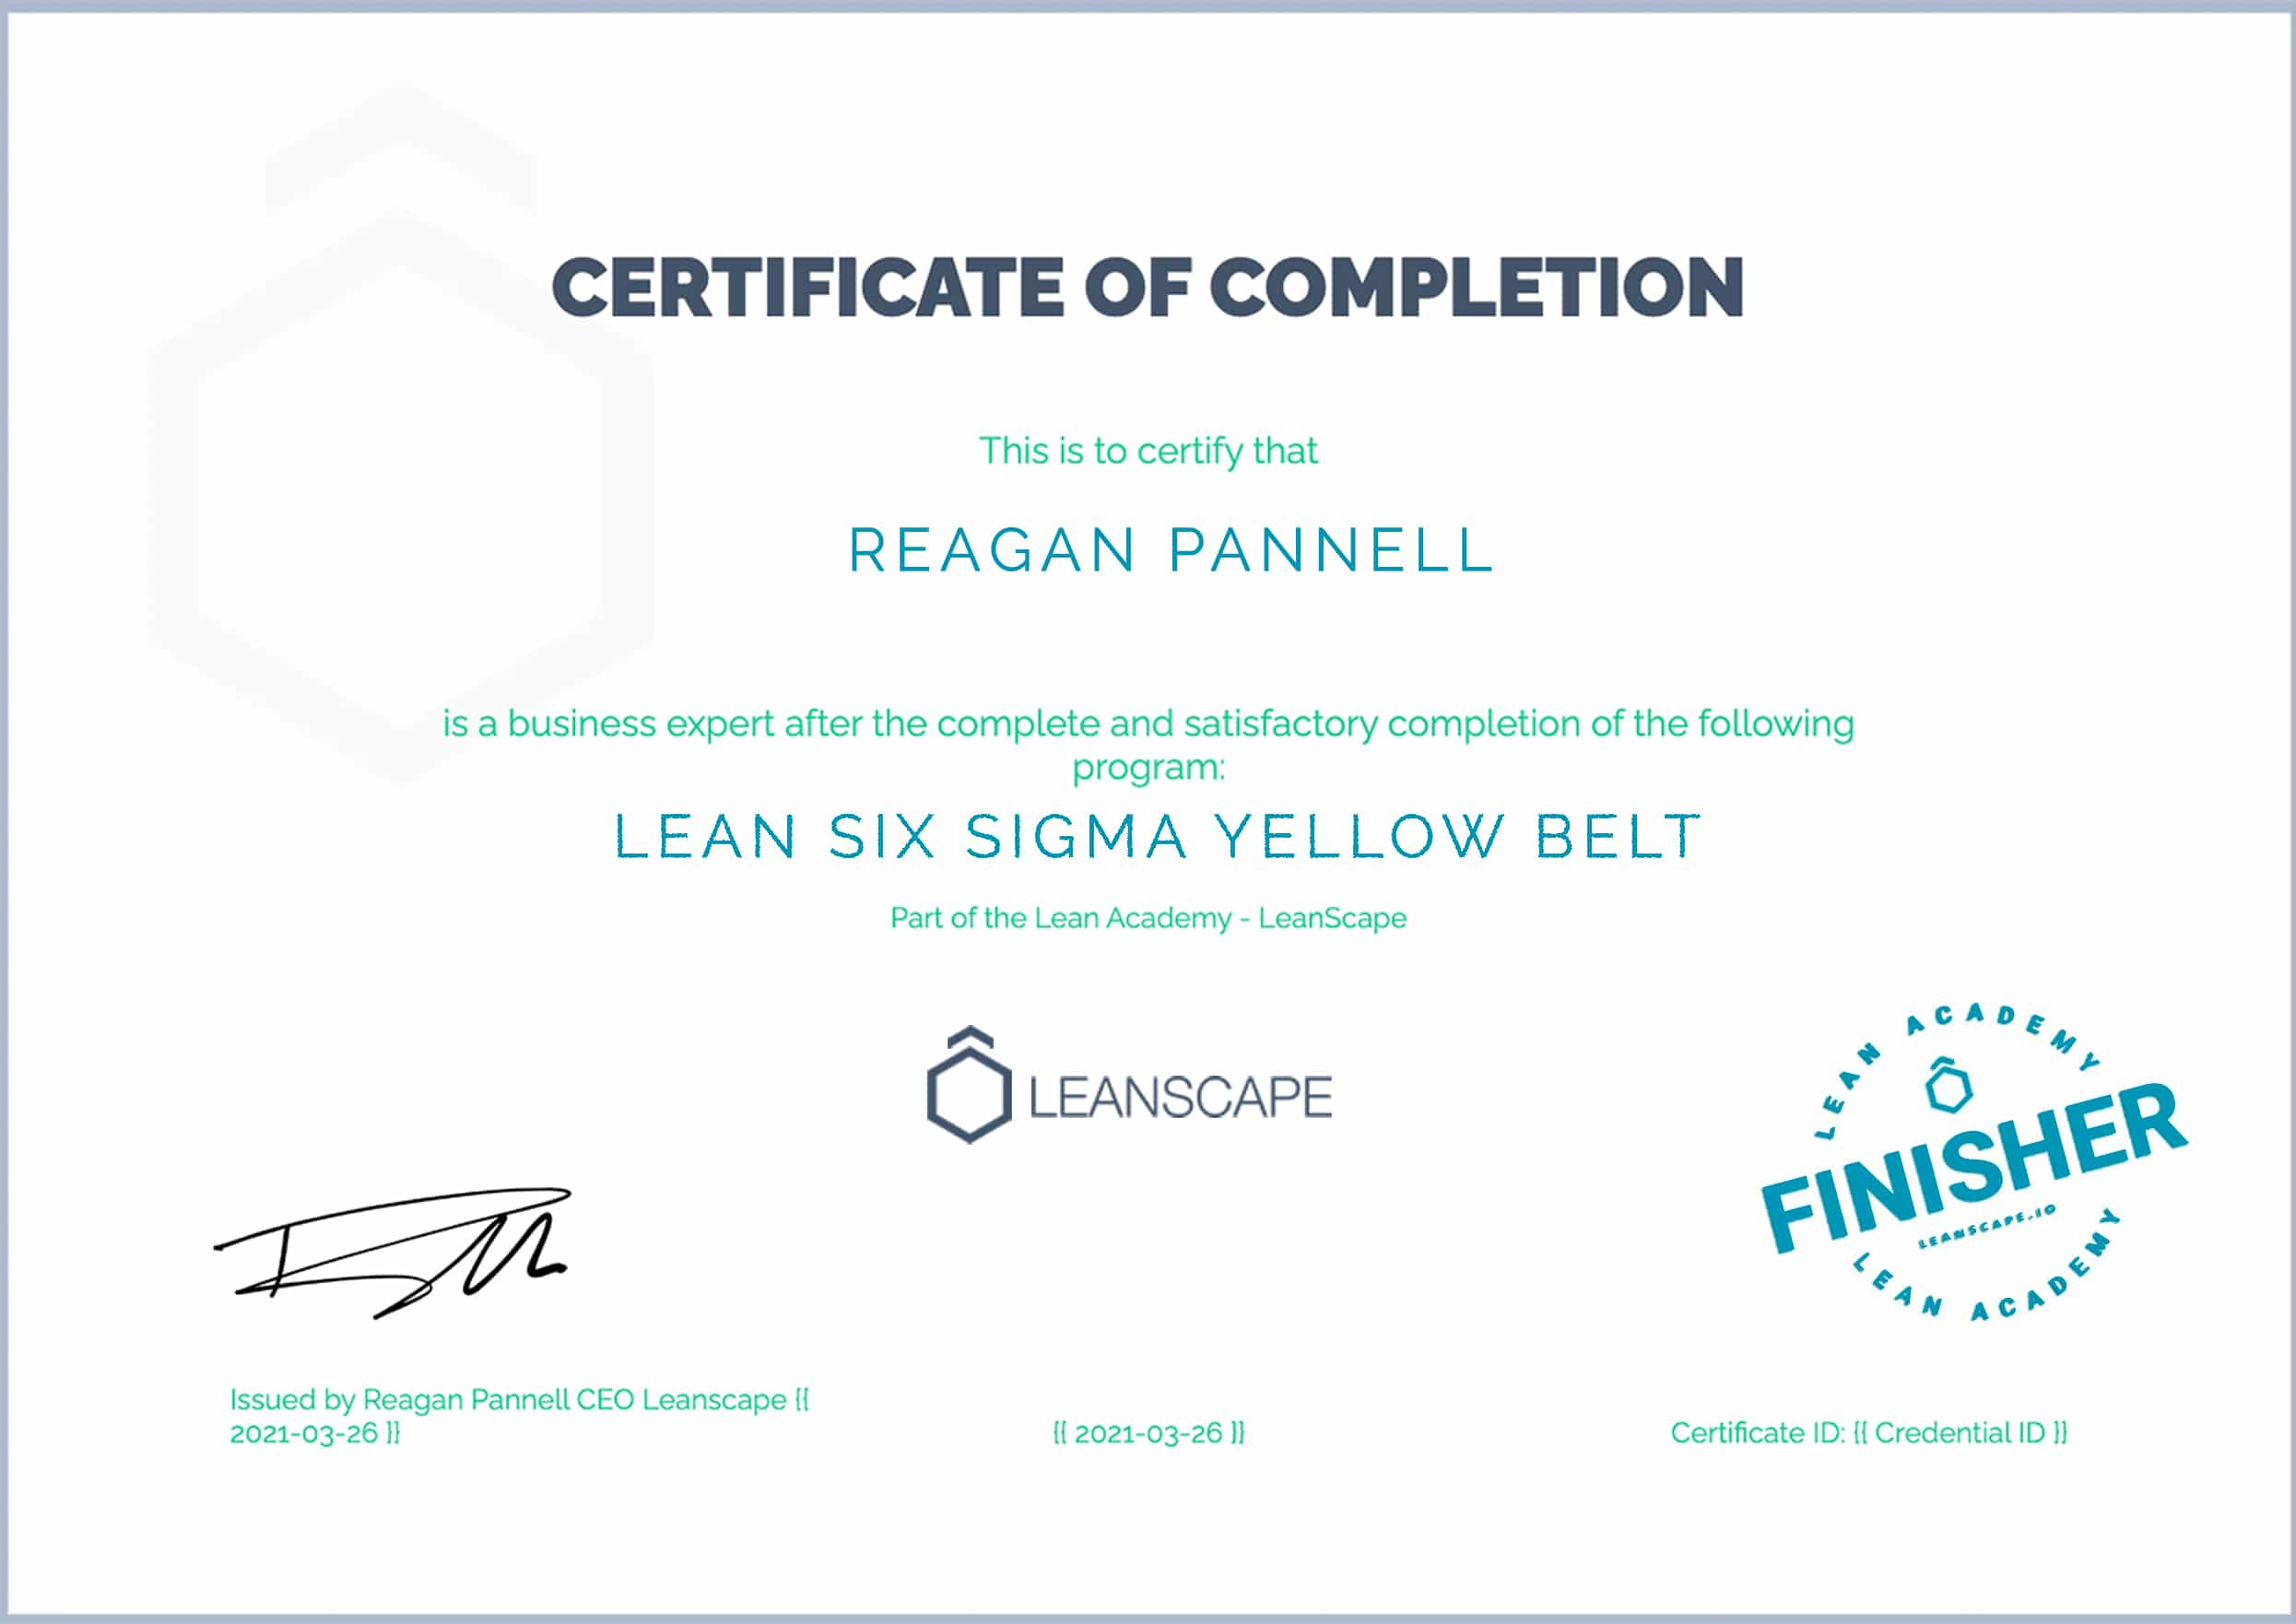 Lean Six Sigma Yellow Belt Certificate